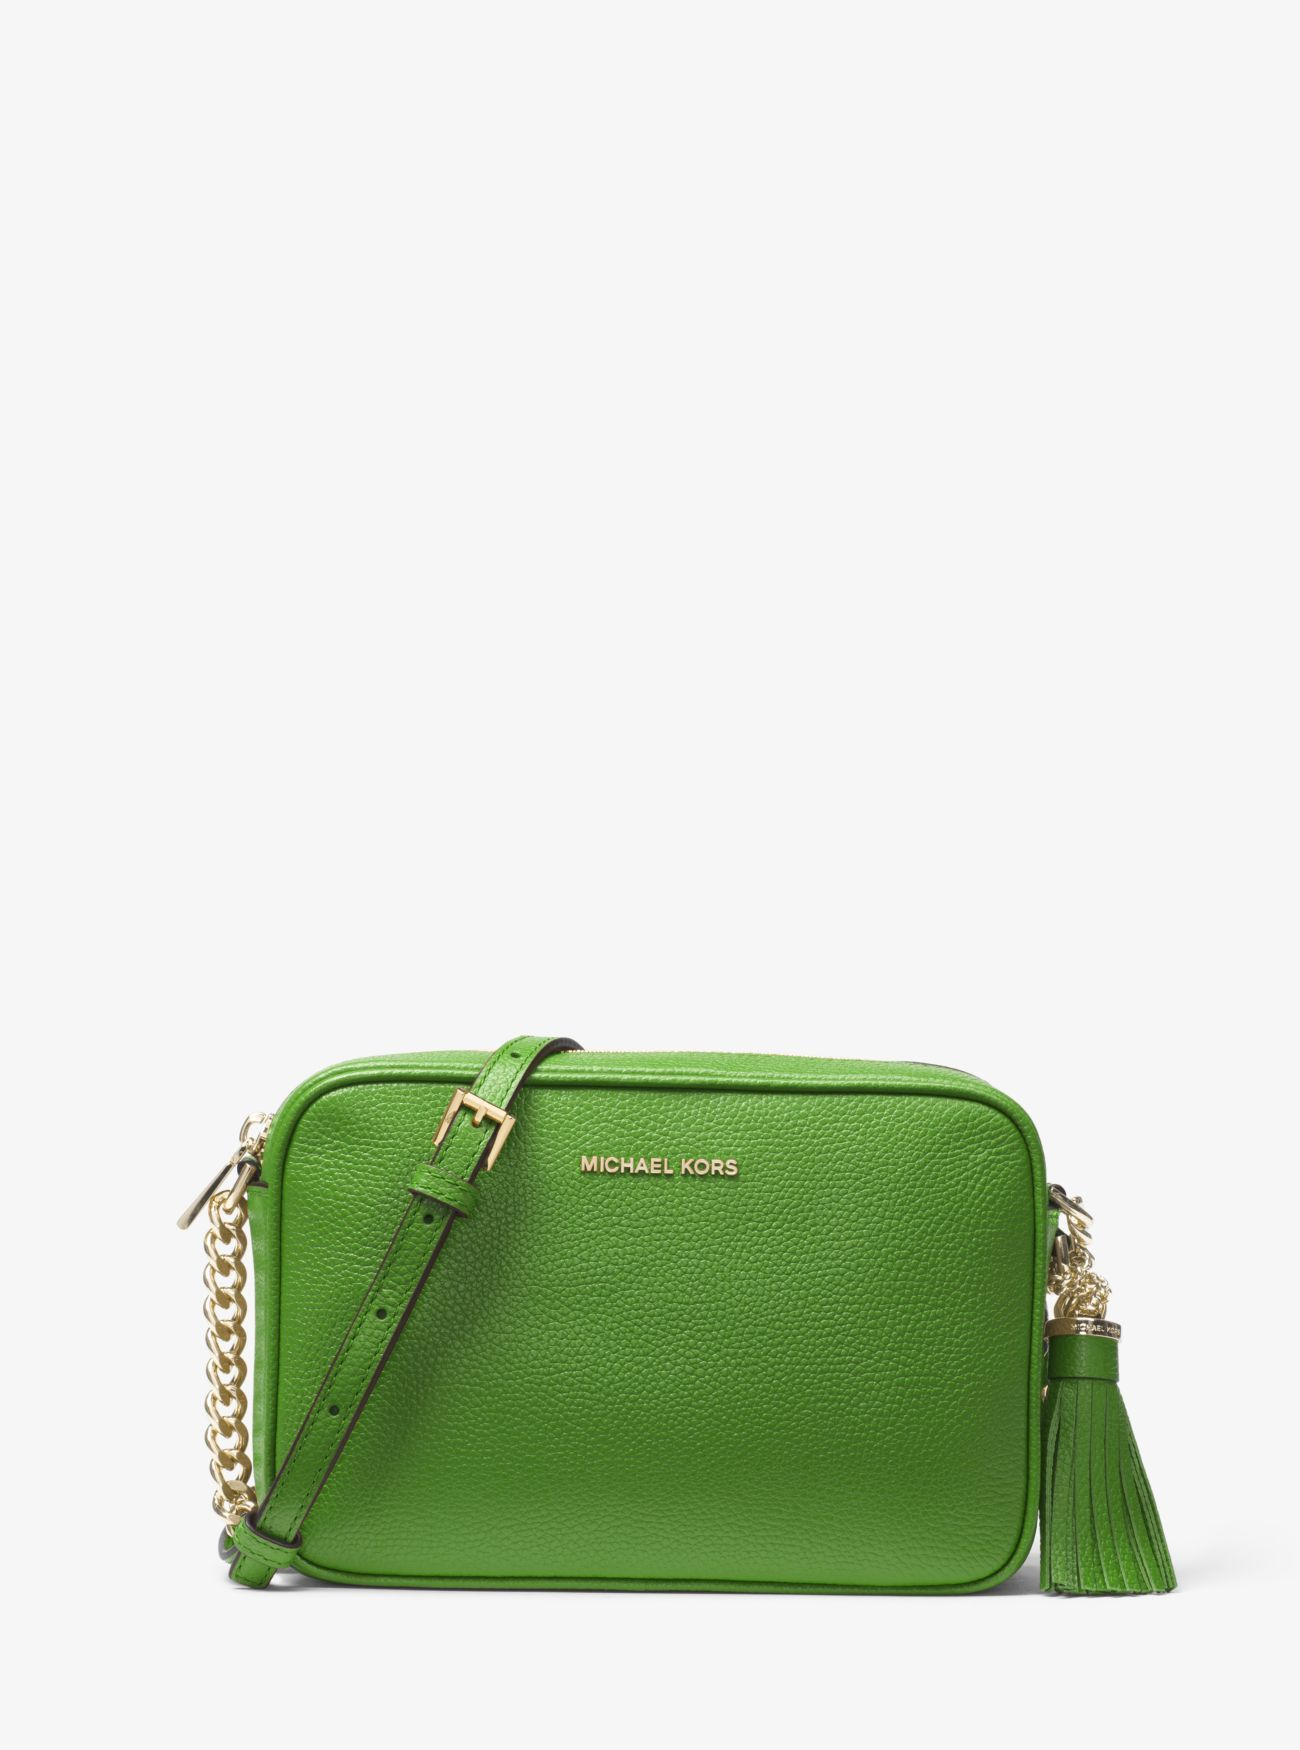 a7943bf24a45 Michael Kors Handbags Are on Up to 75% Off for a Labor Day Sale